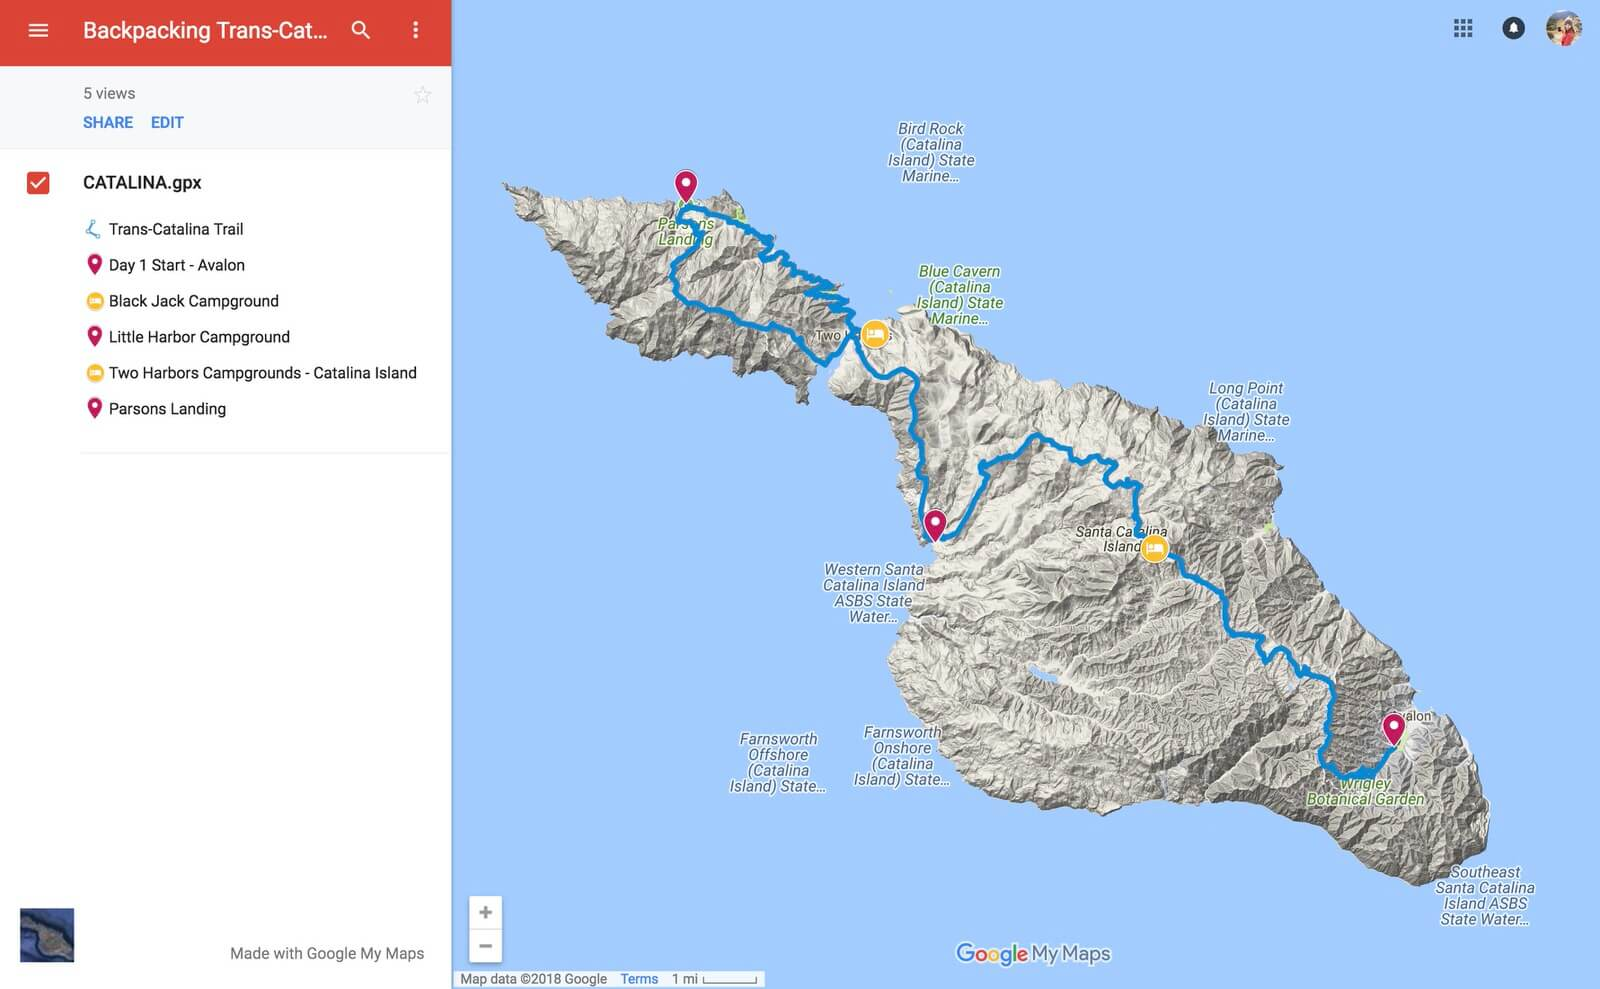 """Backpacking the Trans-Catalina Island Trail in California  